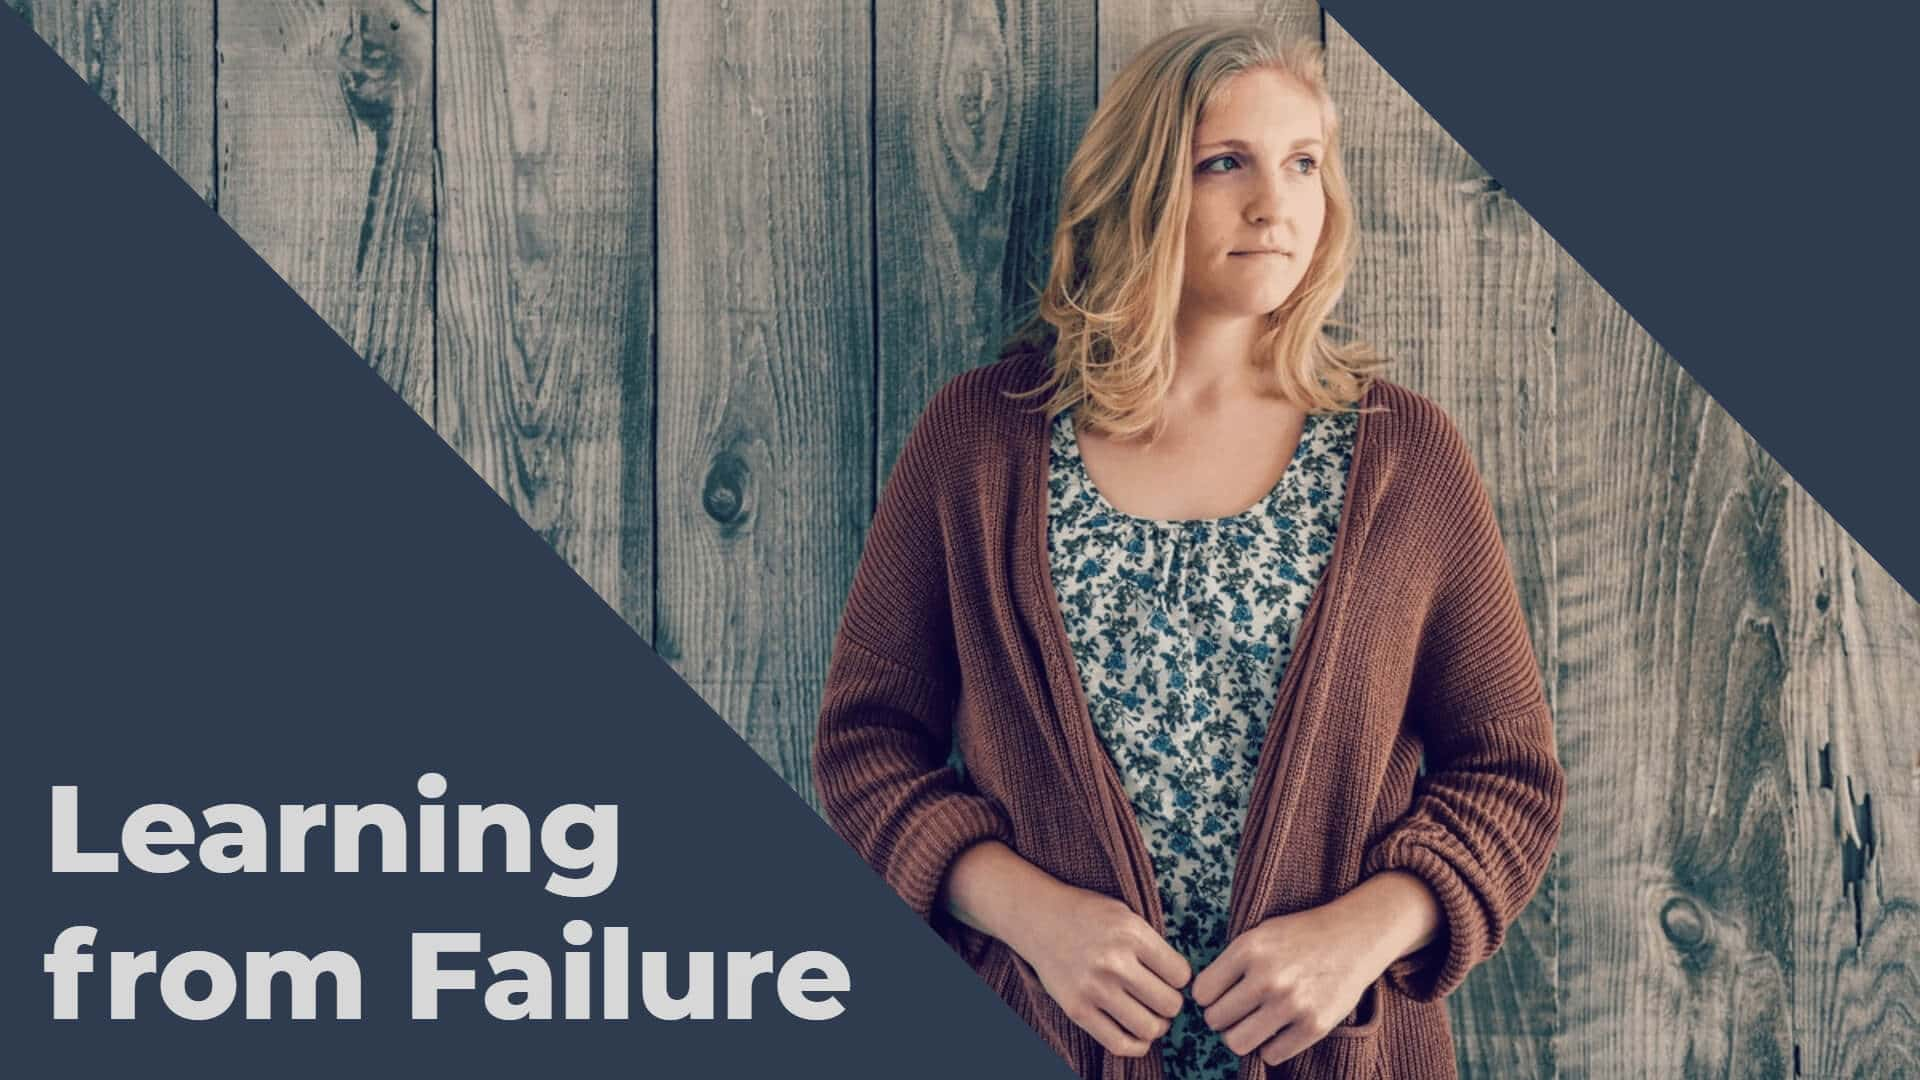 Learning from Failure: A Positive Approach for Success